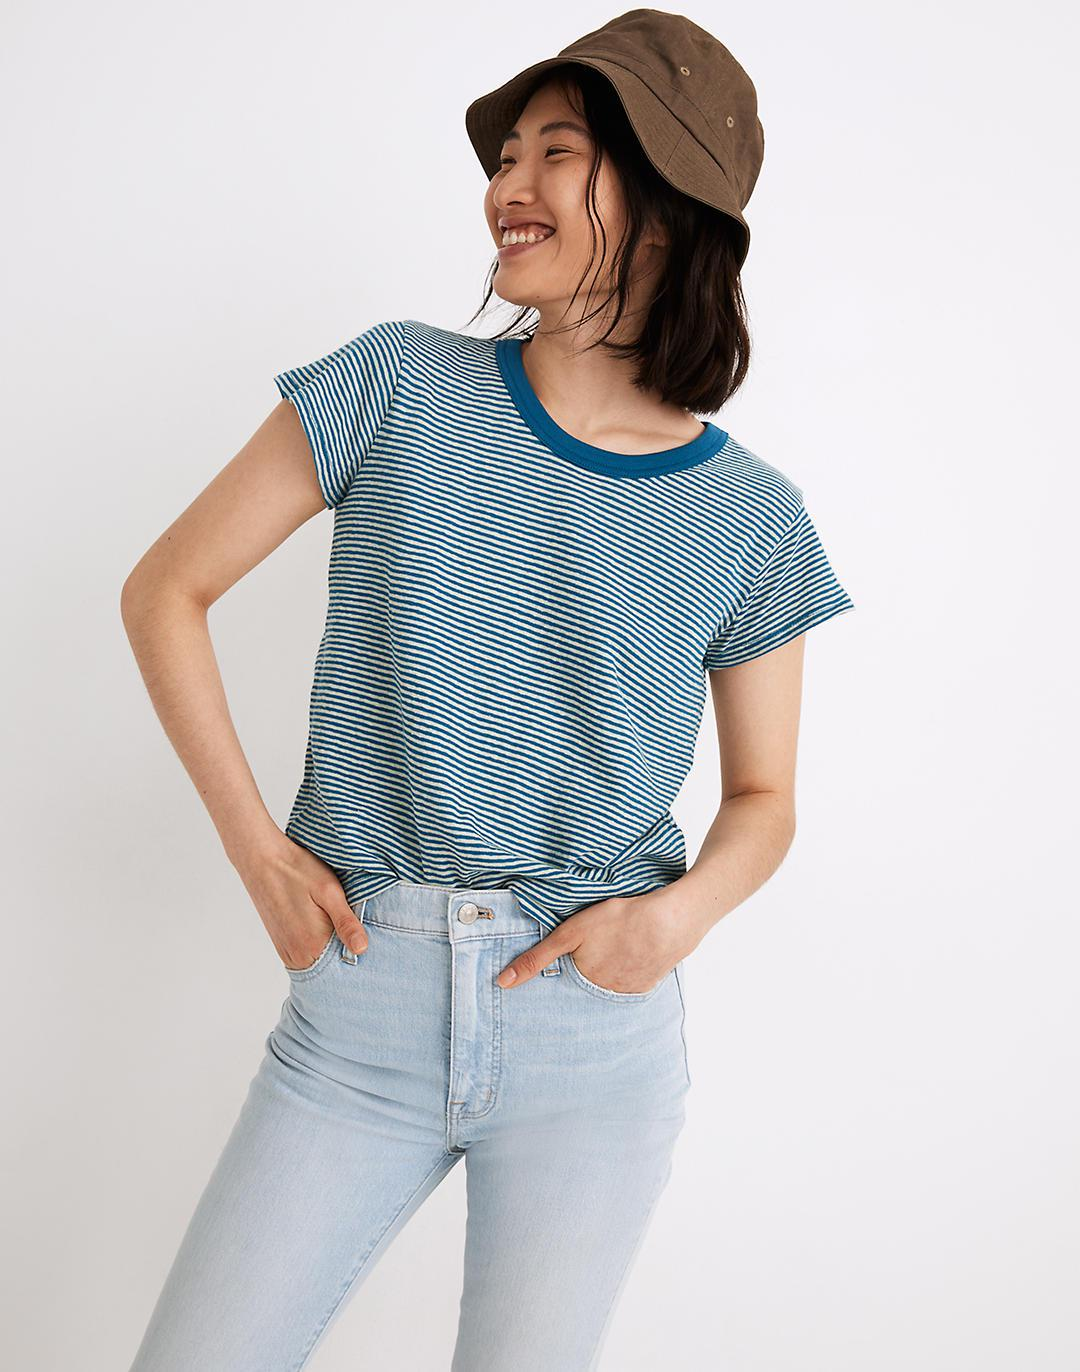 The Perfect Vintage Tee in Parnell Stripe